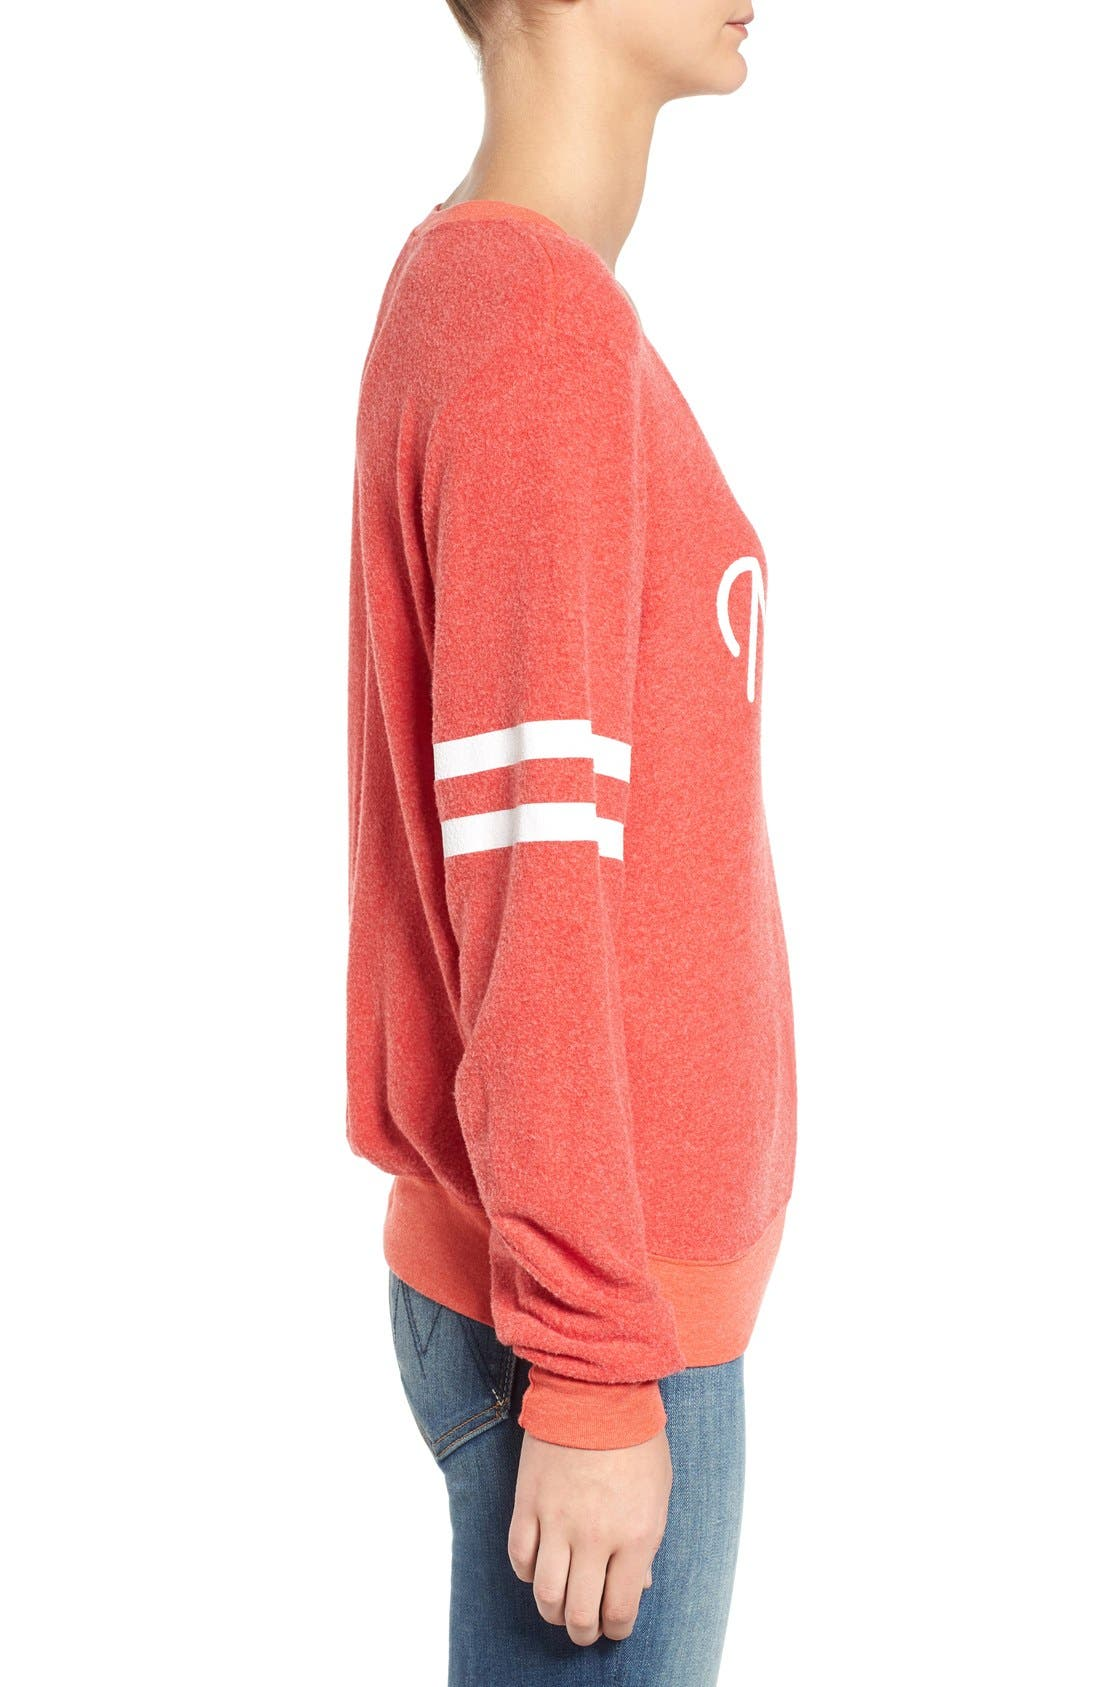 Baggy Beach Jumper - Merry Pullover,                             Alternate thumbnail 4, color,                             620